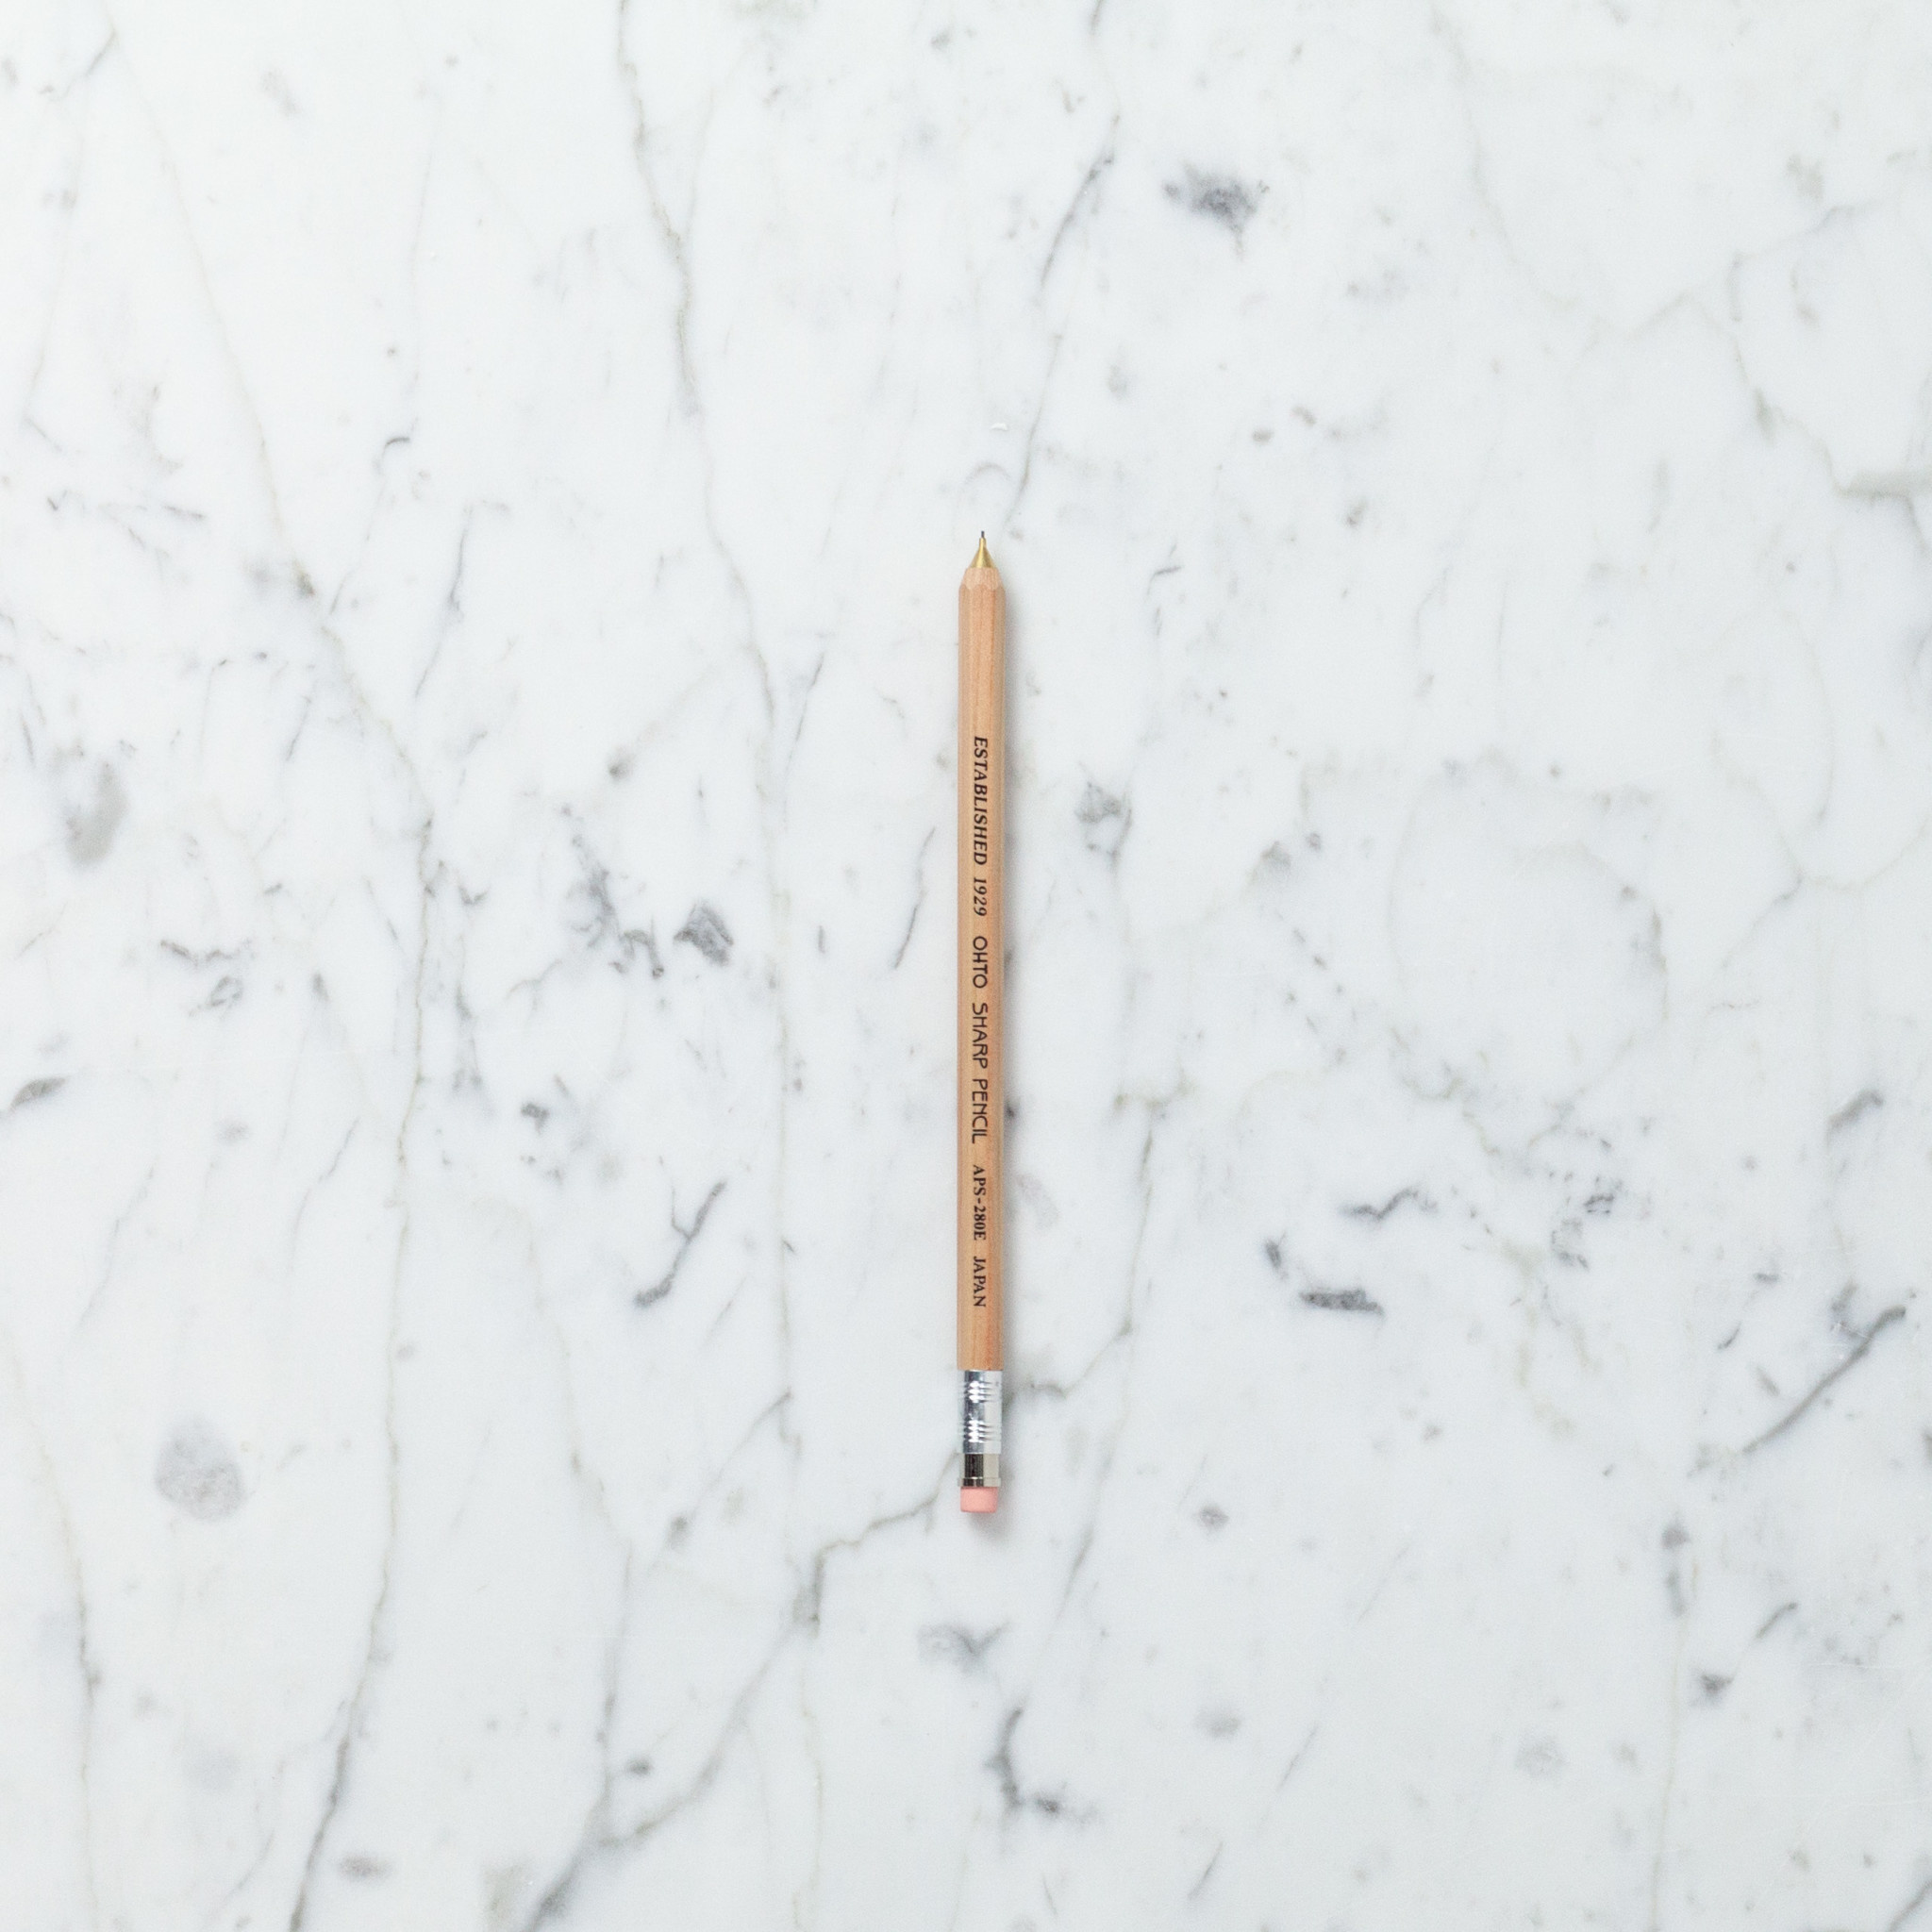 Ohto Wooden Mechanical Pencil - Slim - Natural